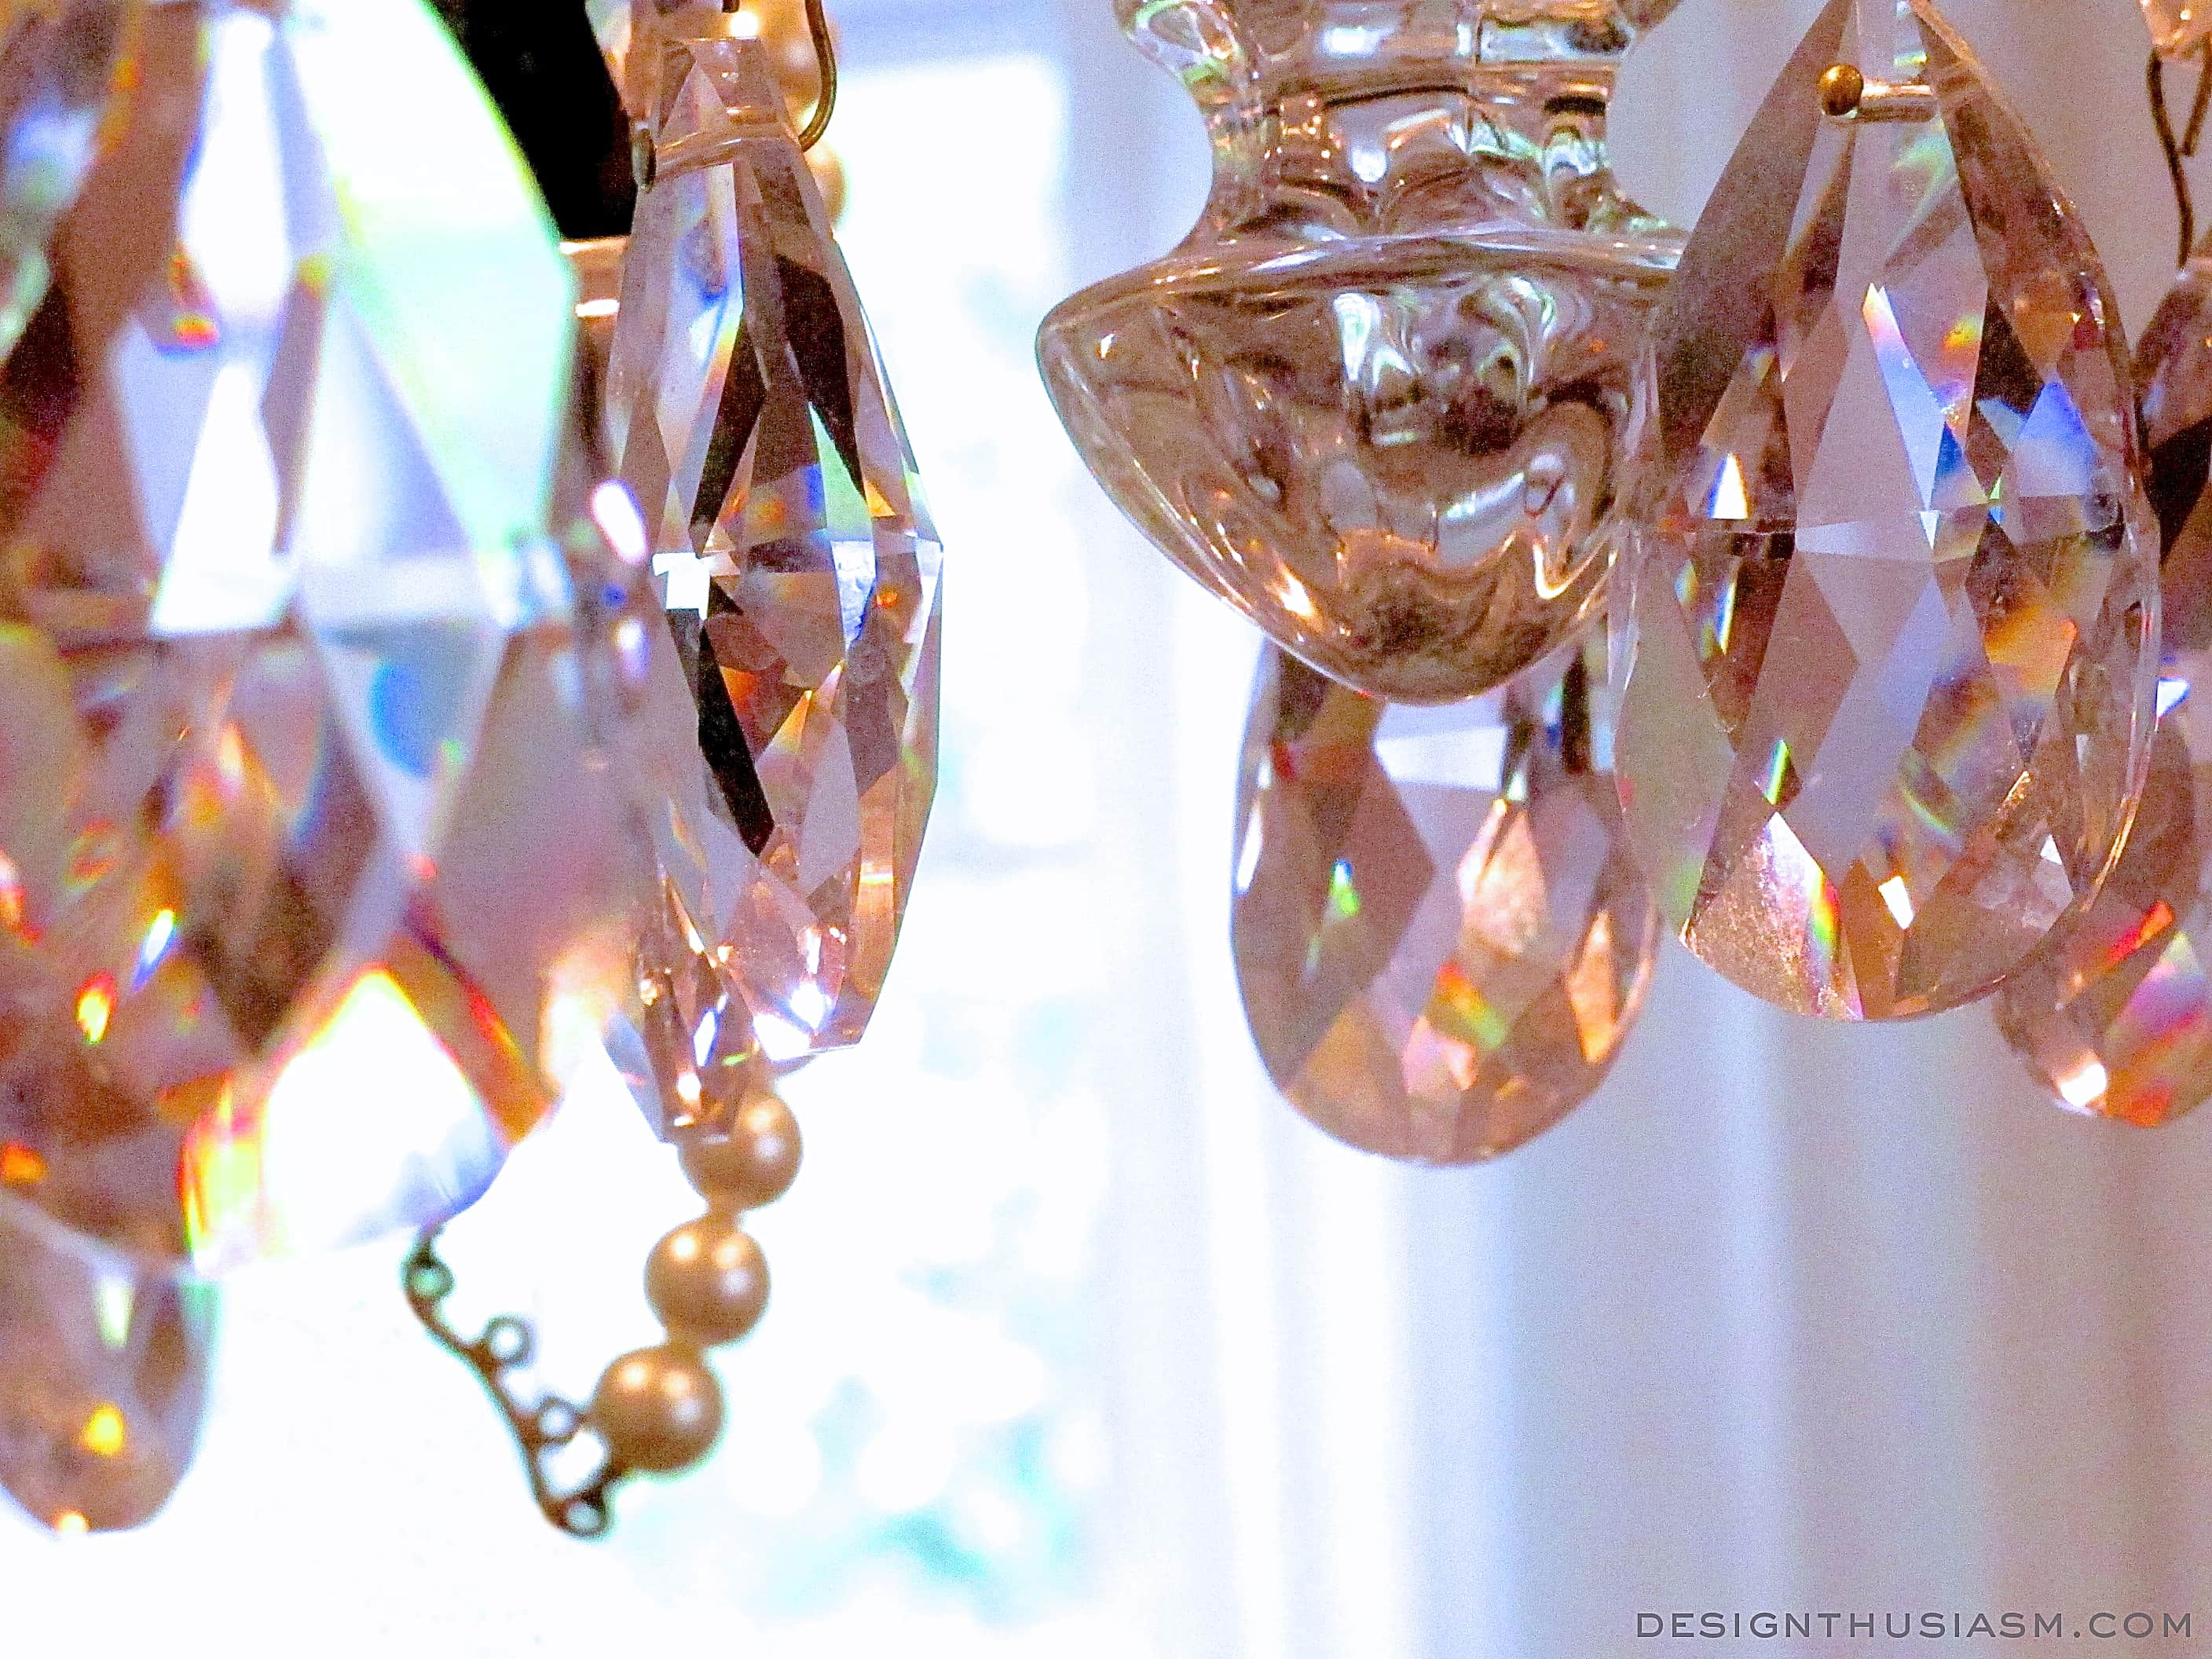 Vintage Chandelier with Teacups and Pink Crystals | Designthusiasm.com